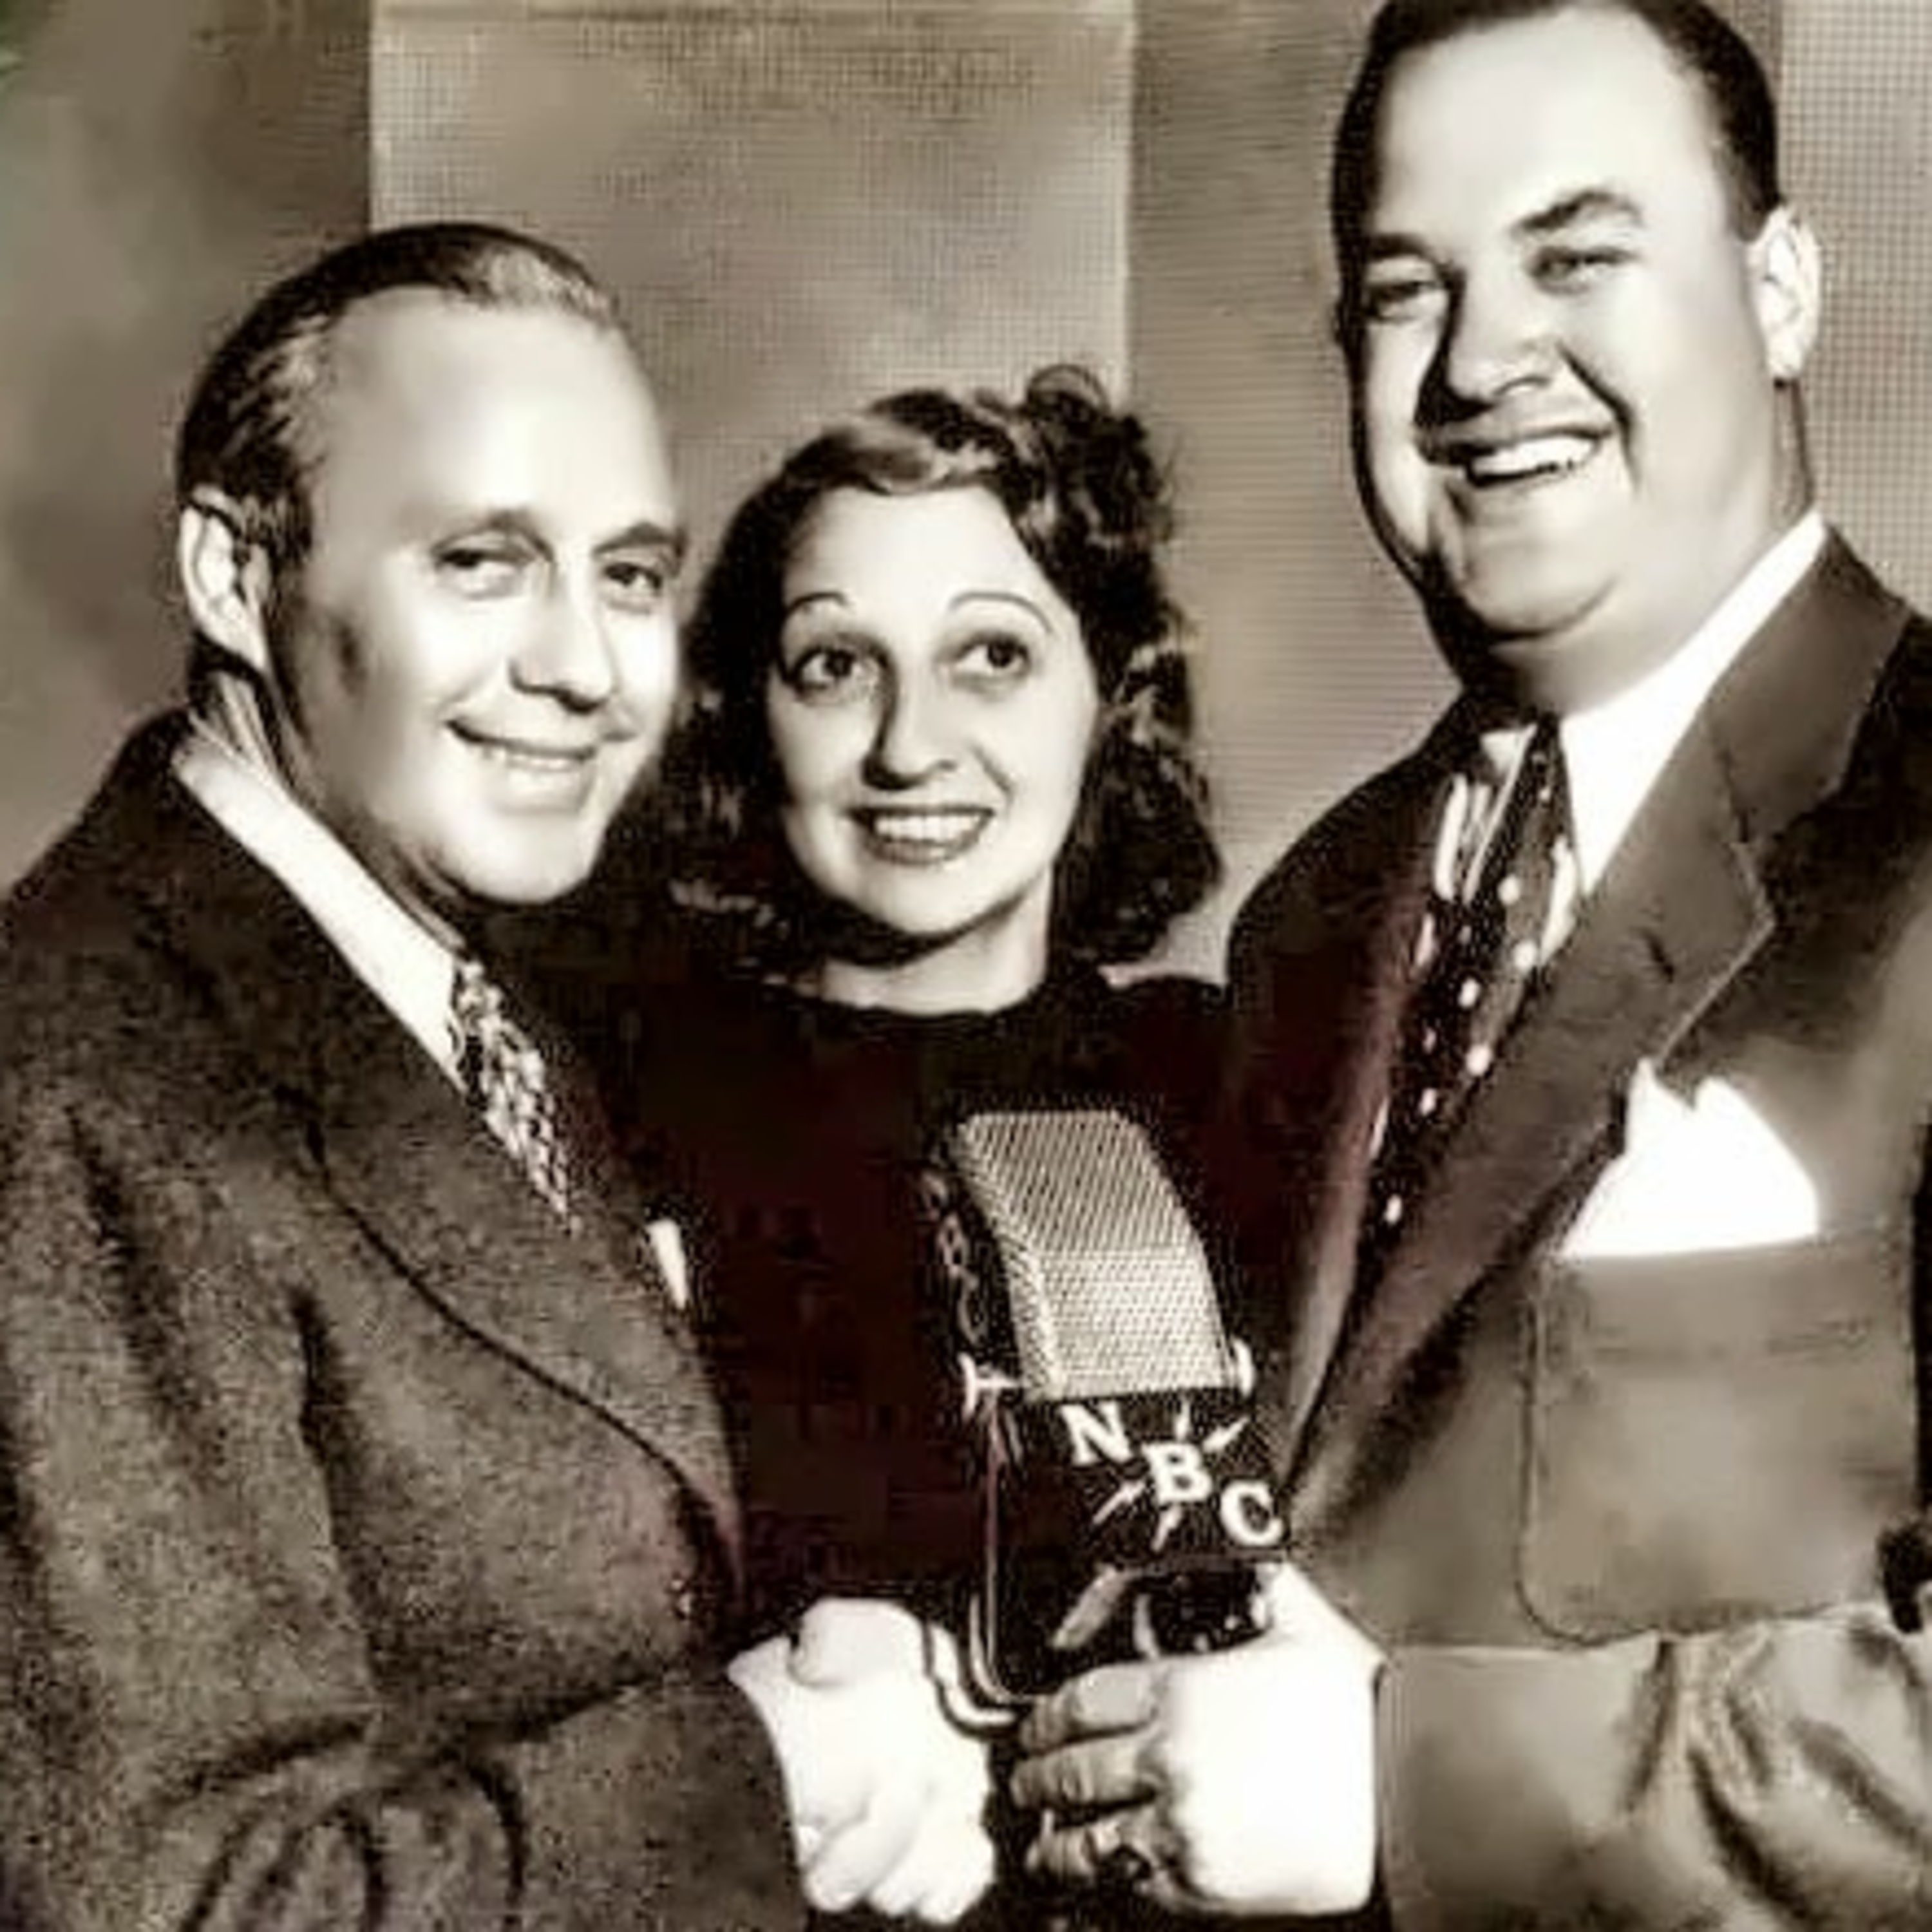 The Benny and Chesterton Morning Show Podcast - Jacks' Guests Are Amos and Andy and Eddie Cantor - Chesterton's ManAlive - Mary's Grass Reek